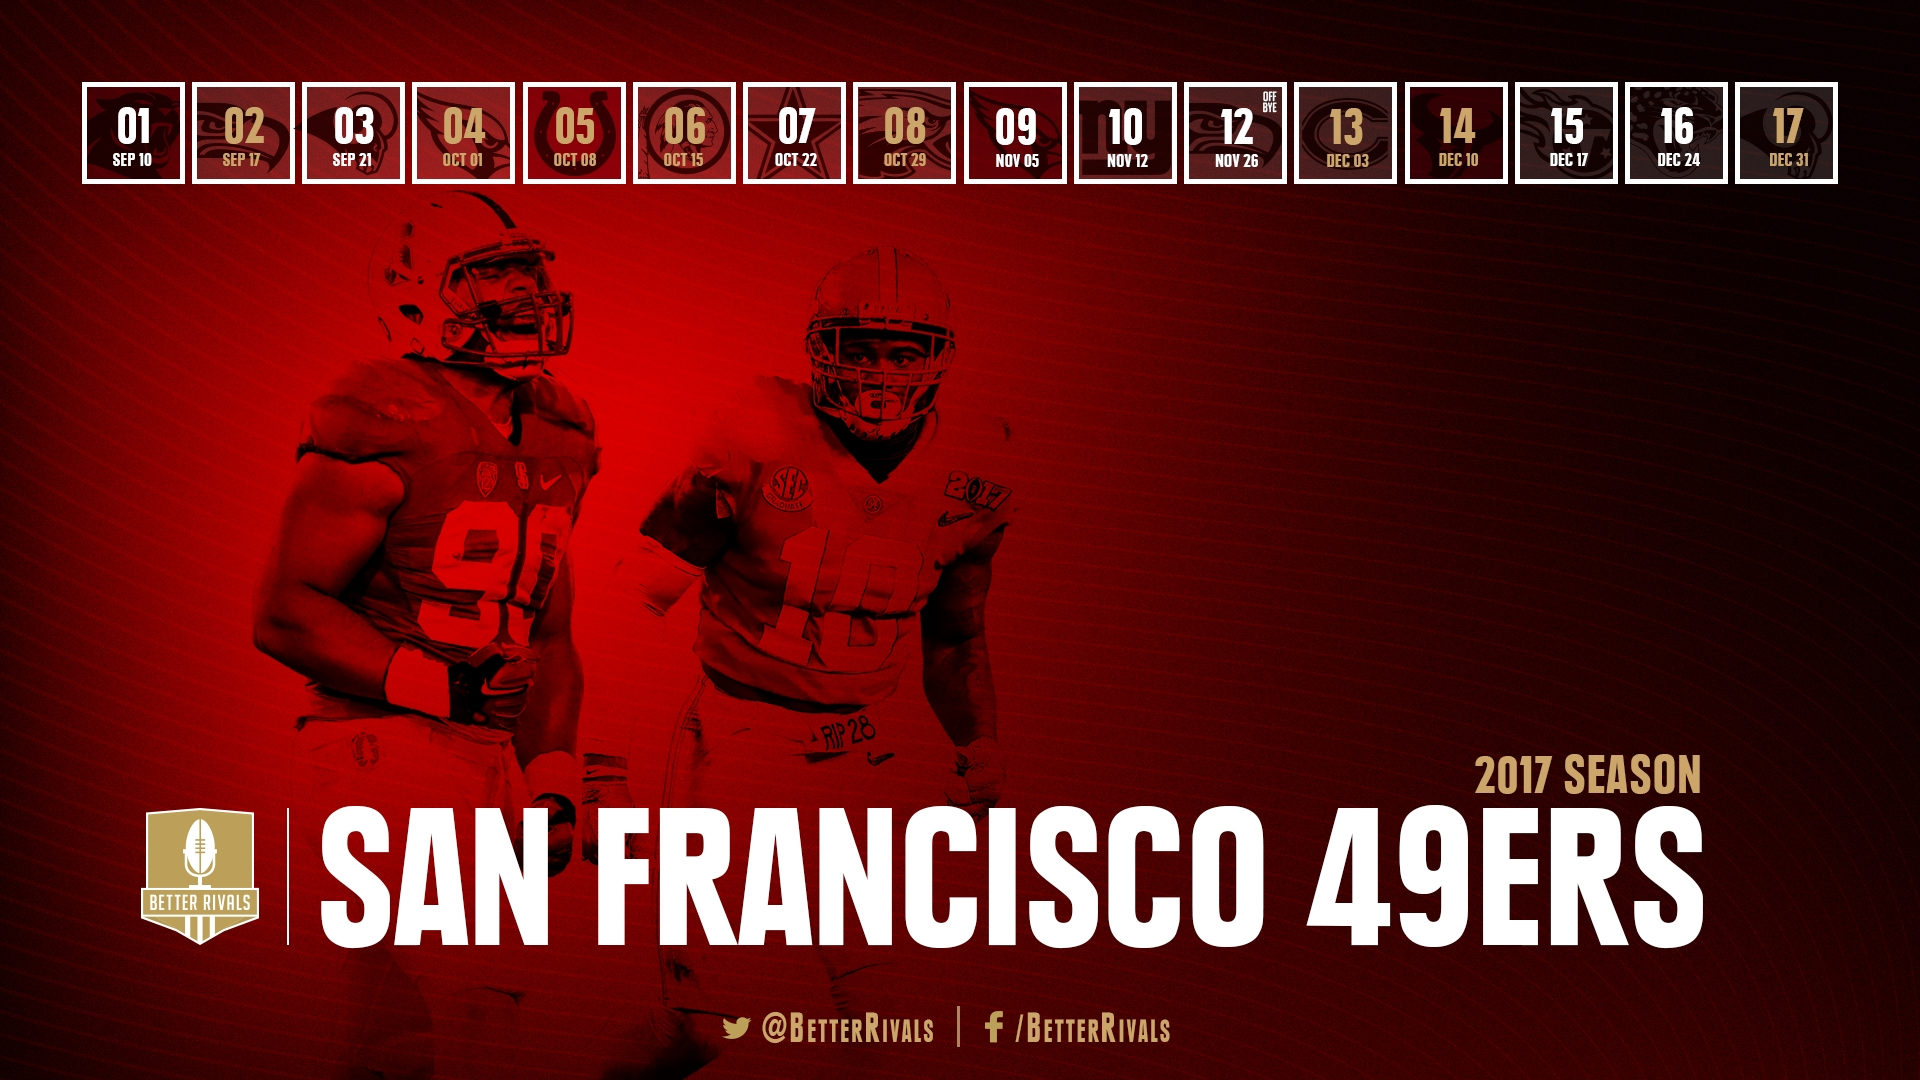 10 Top 49Ers 2017 Schedule Wallpaper FULL HD 1080p For PC Background